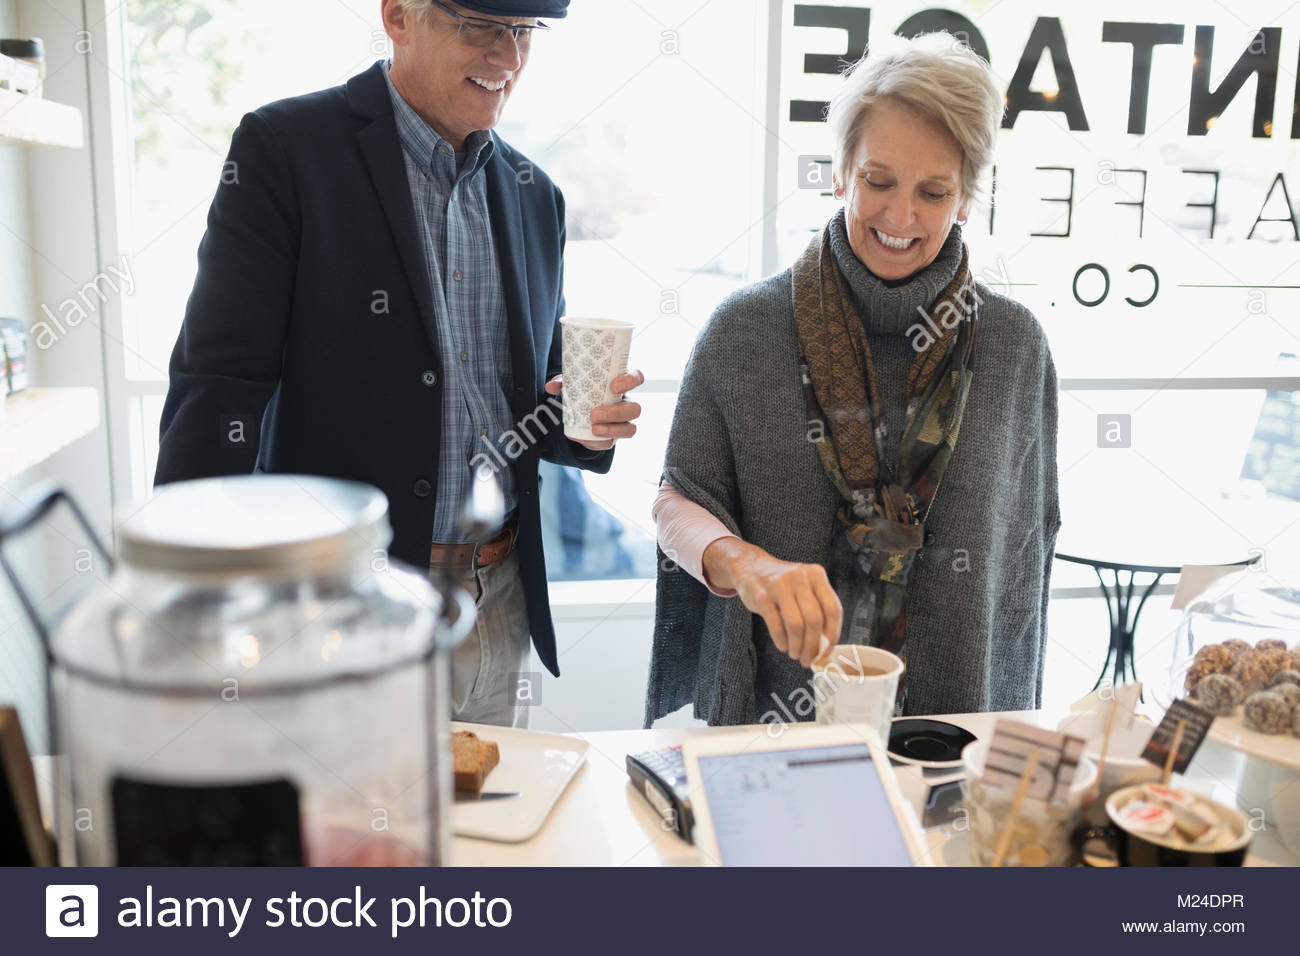 Smiling senior couple buying coffee and pastries at cafe counter - Stock Image